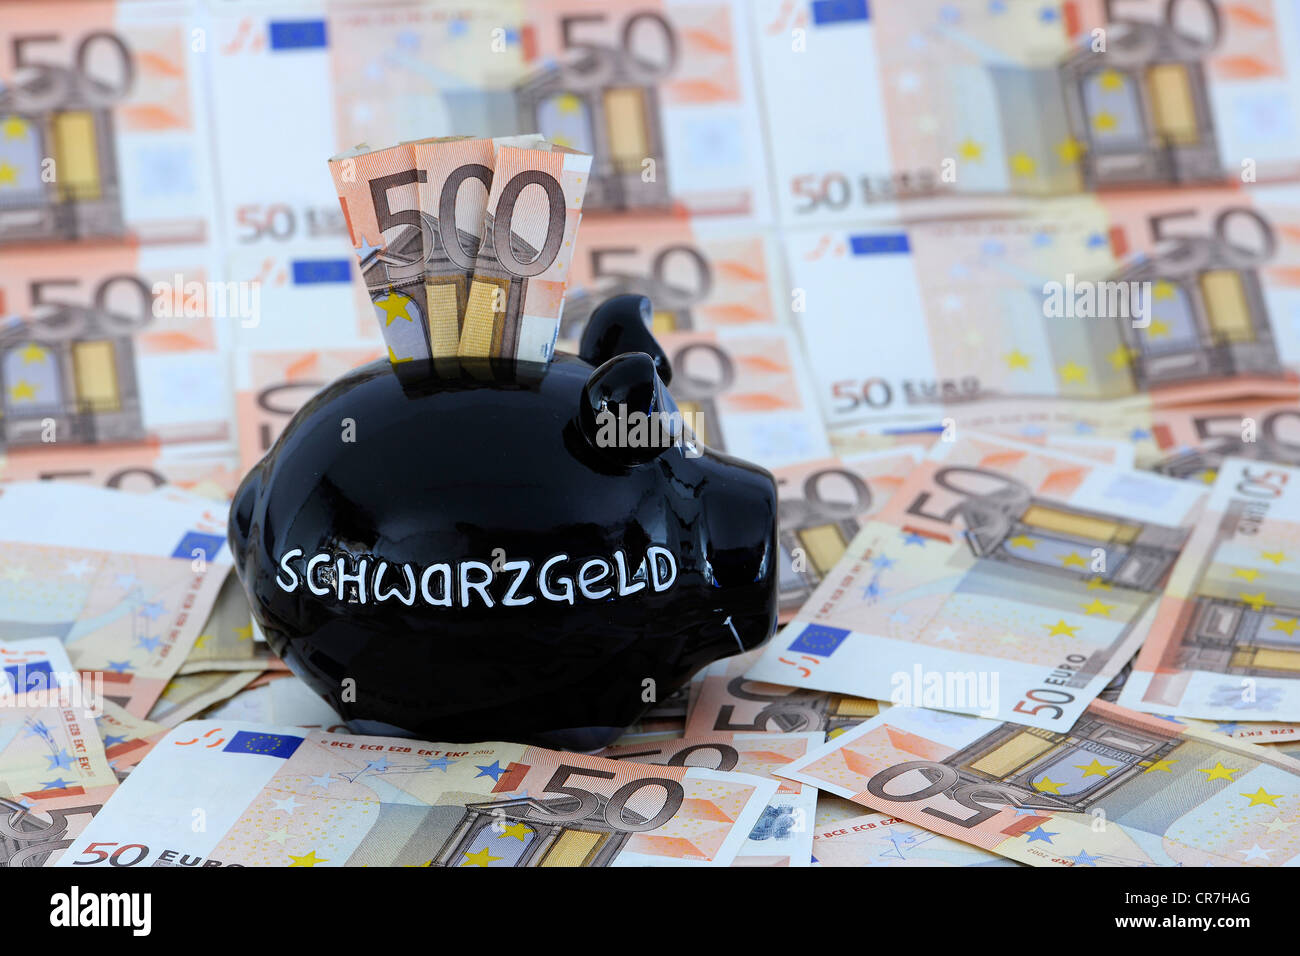 Black piggy bank with Schwarzgeld or dirty money and 50-euro notes - Stock Image